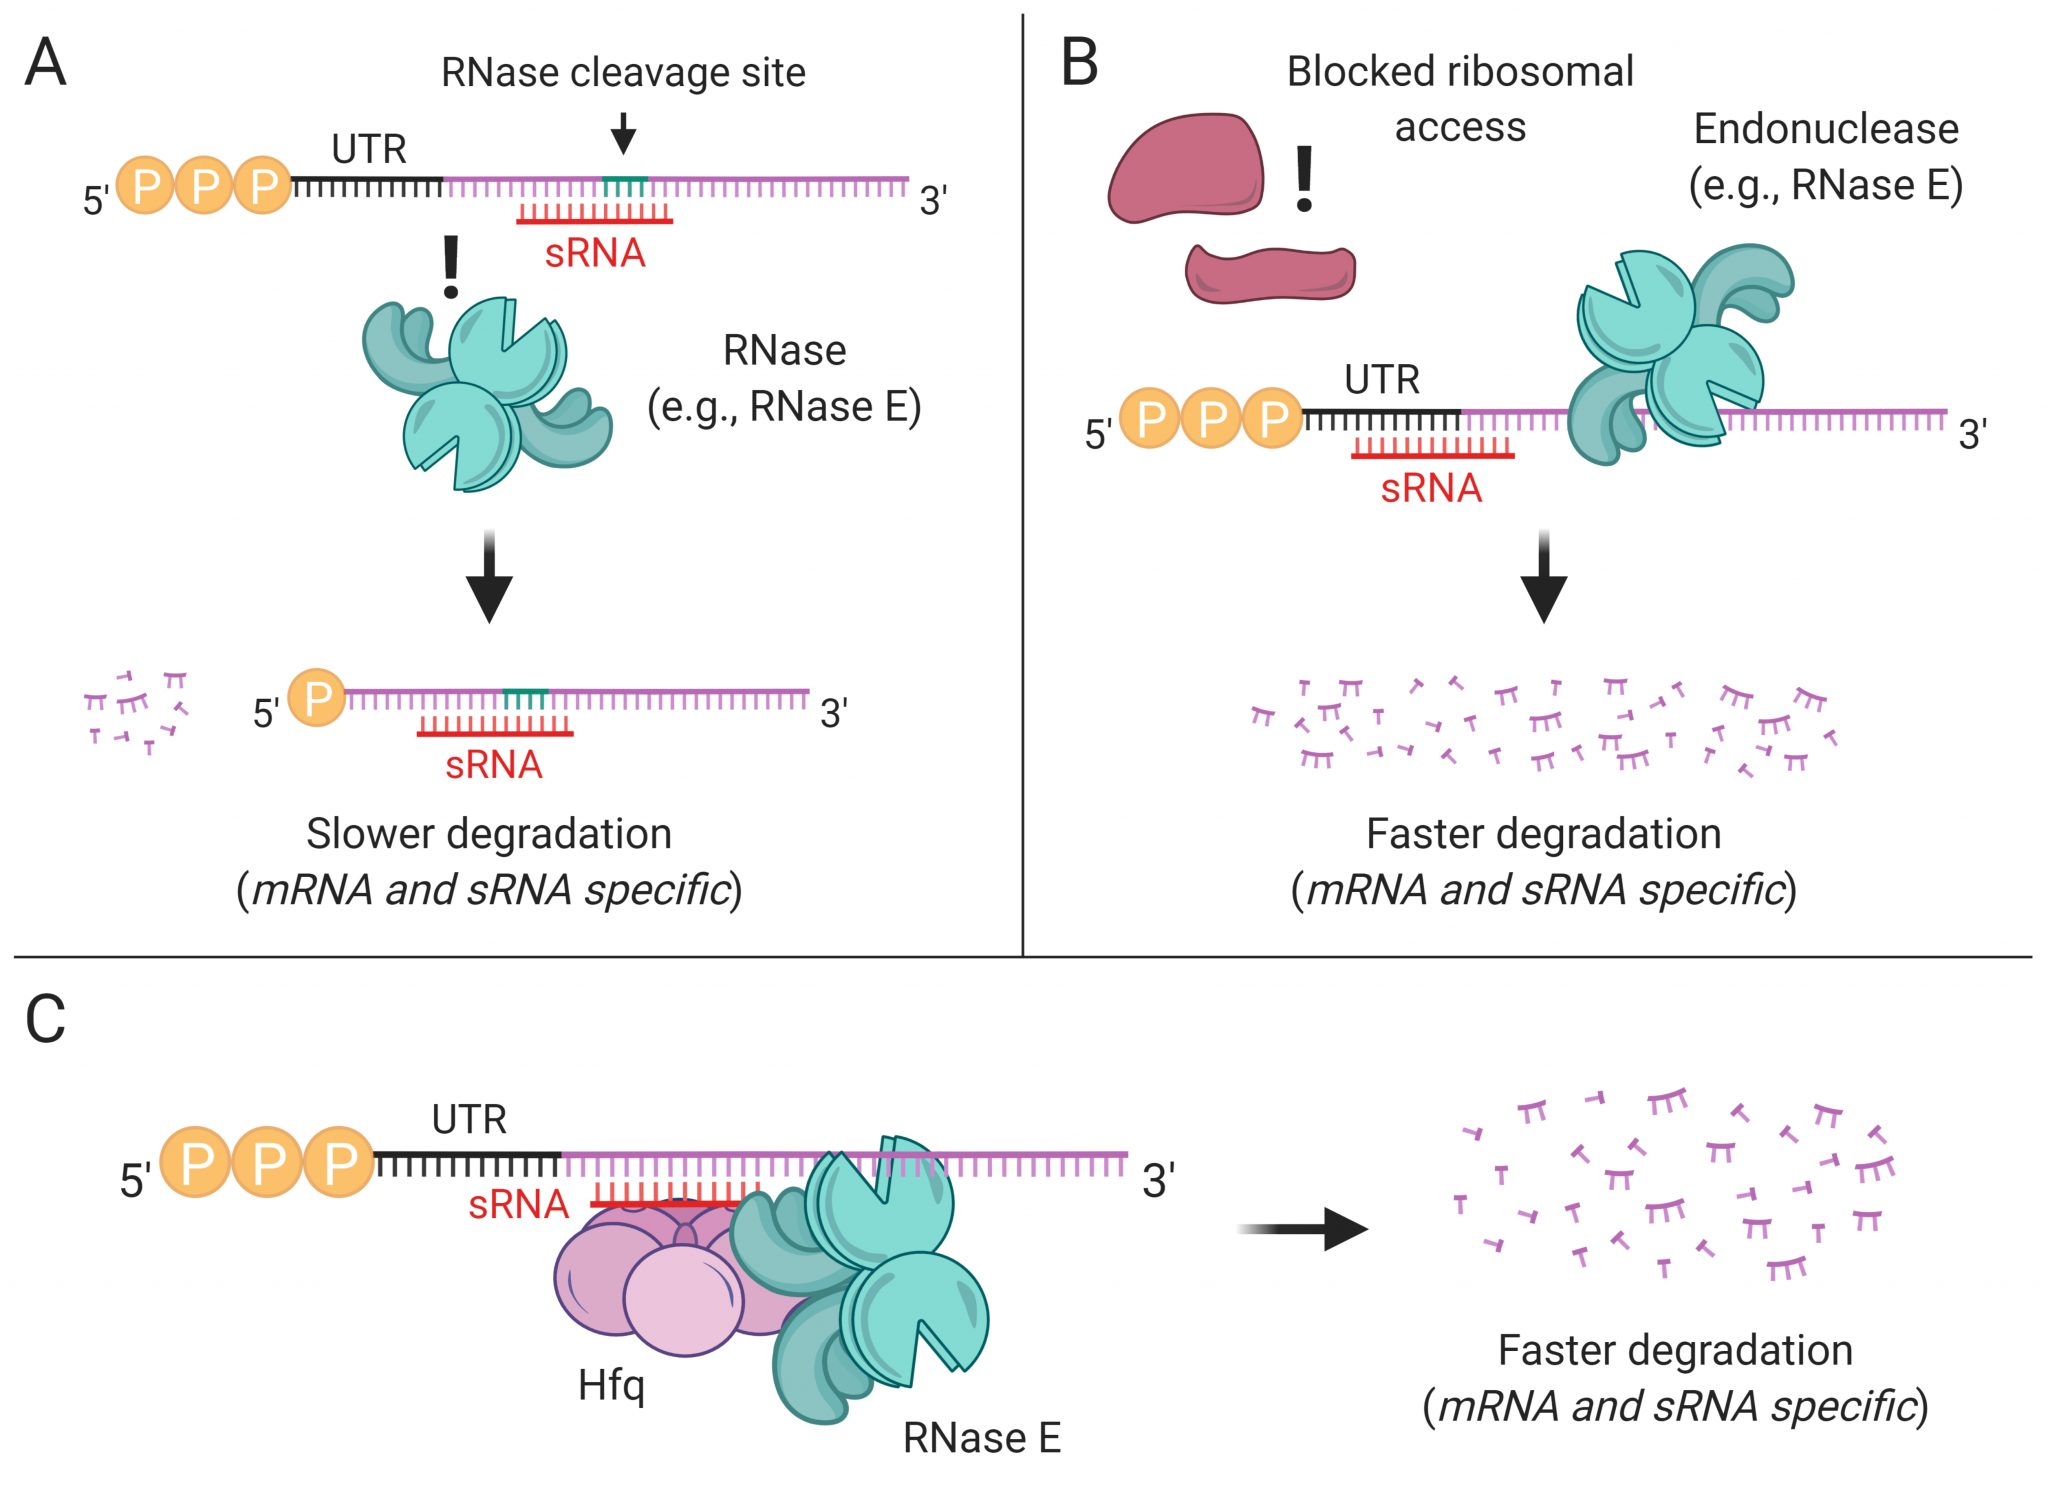 RNA stabilization or degradation mechanisms